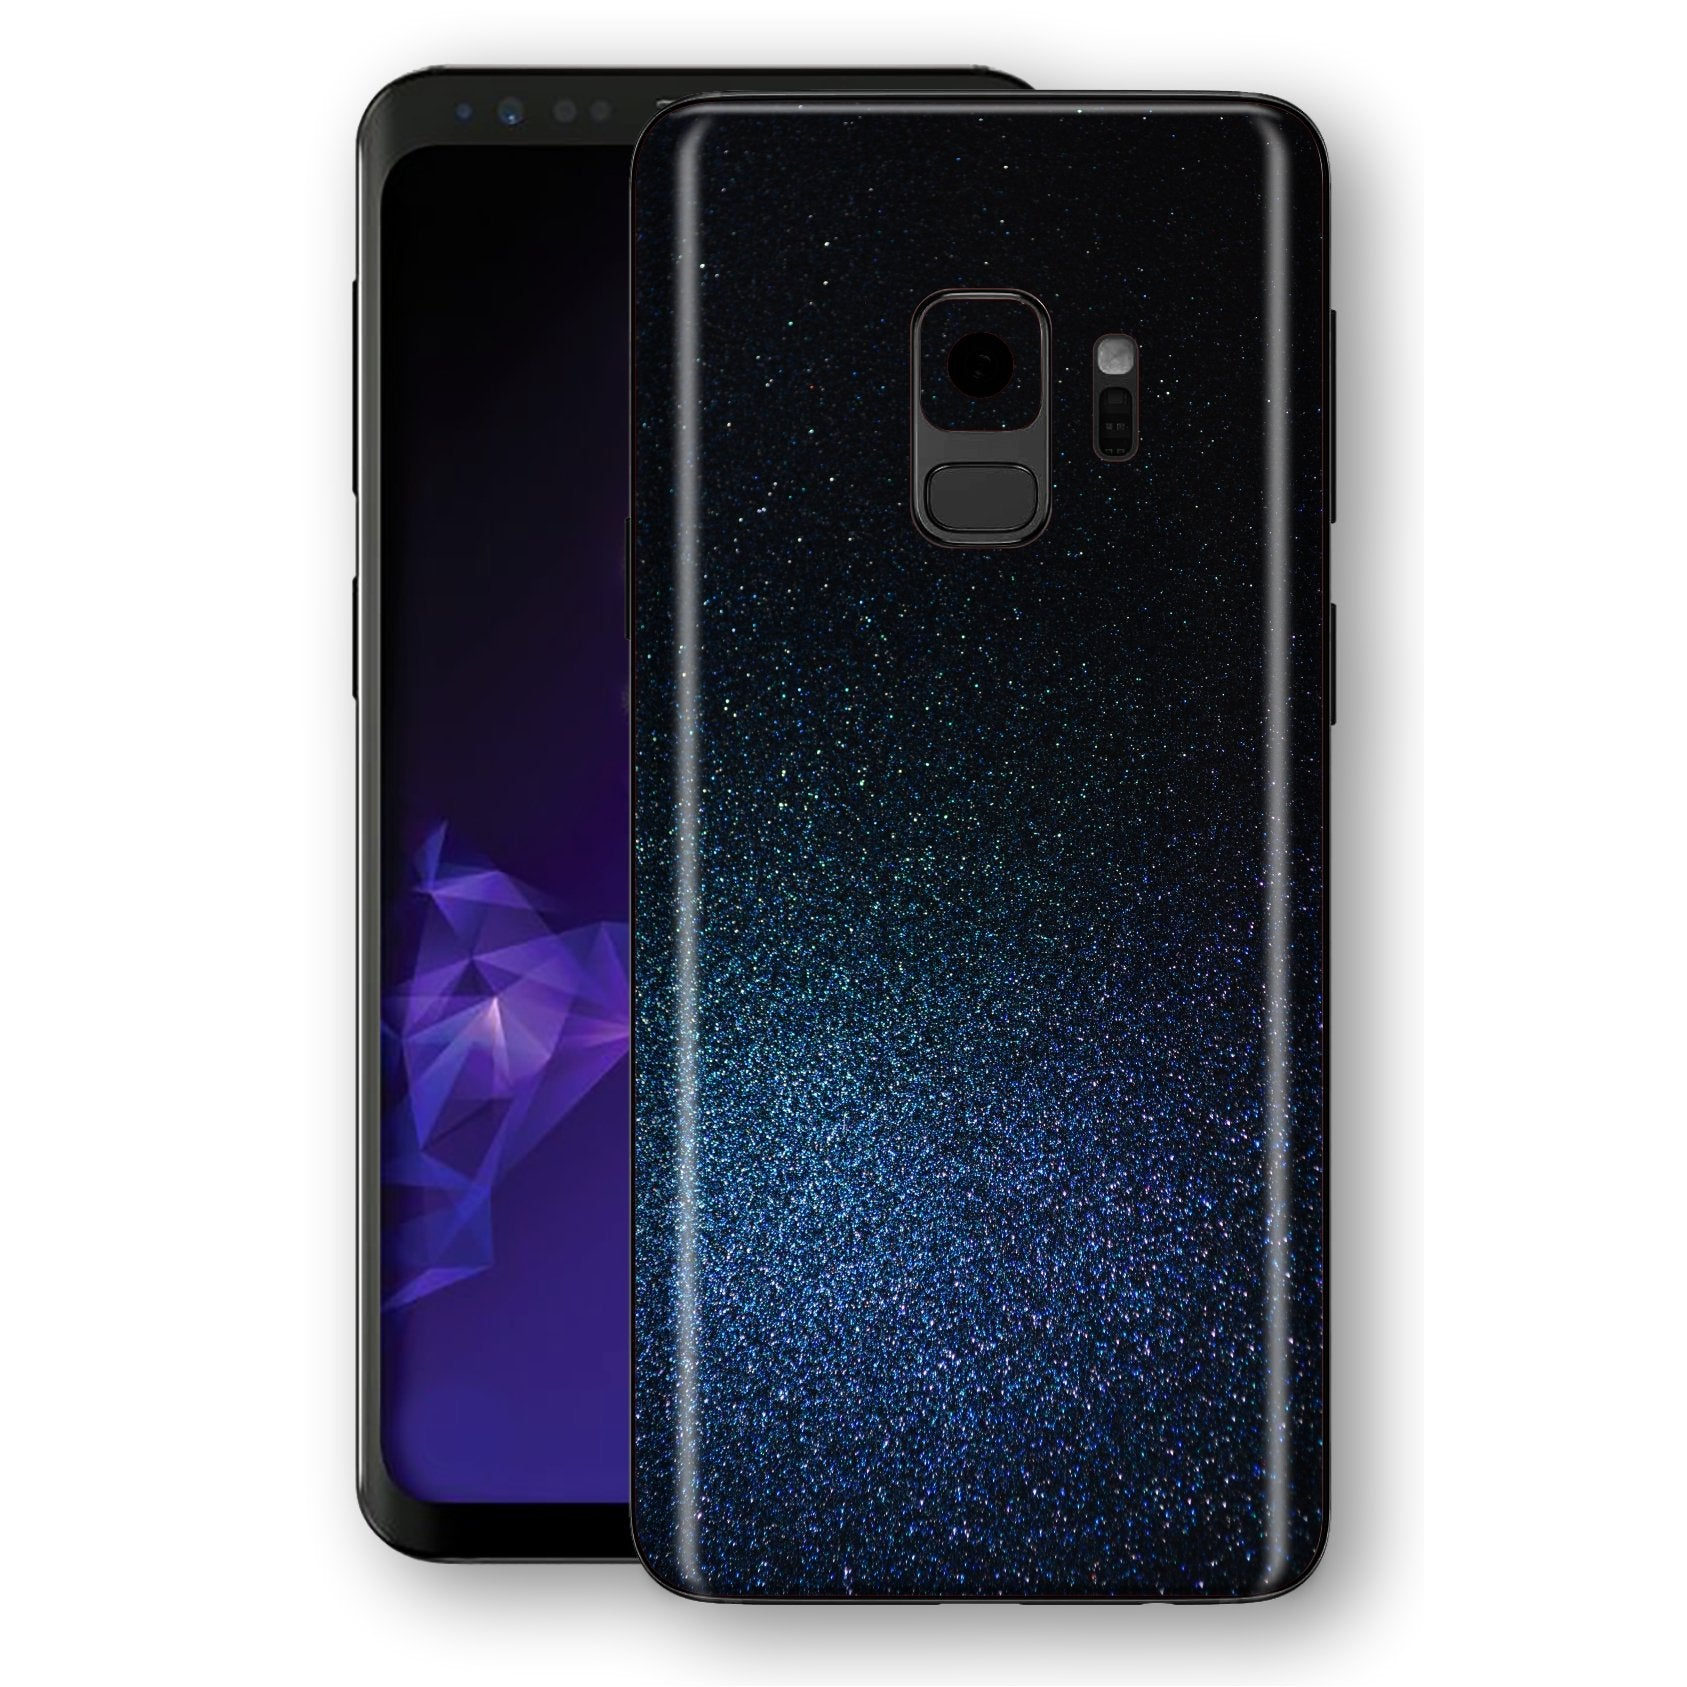 Samsung GALAXY S9 Glossy Midnight Blue Metallic Skin, Decal, Wrap, Protector, Cover by EasySkinz | EasySkinz.com